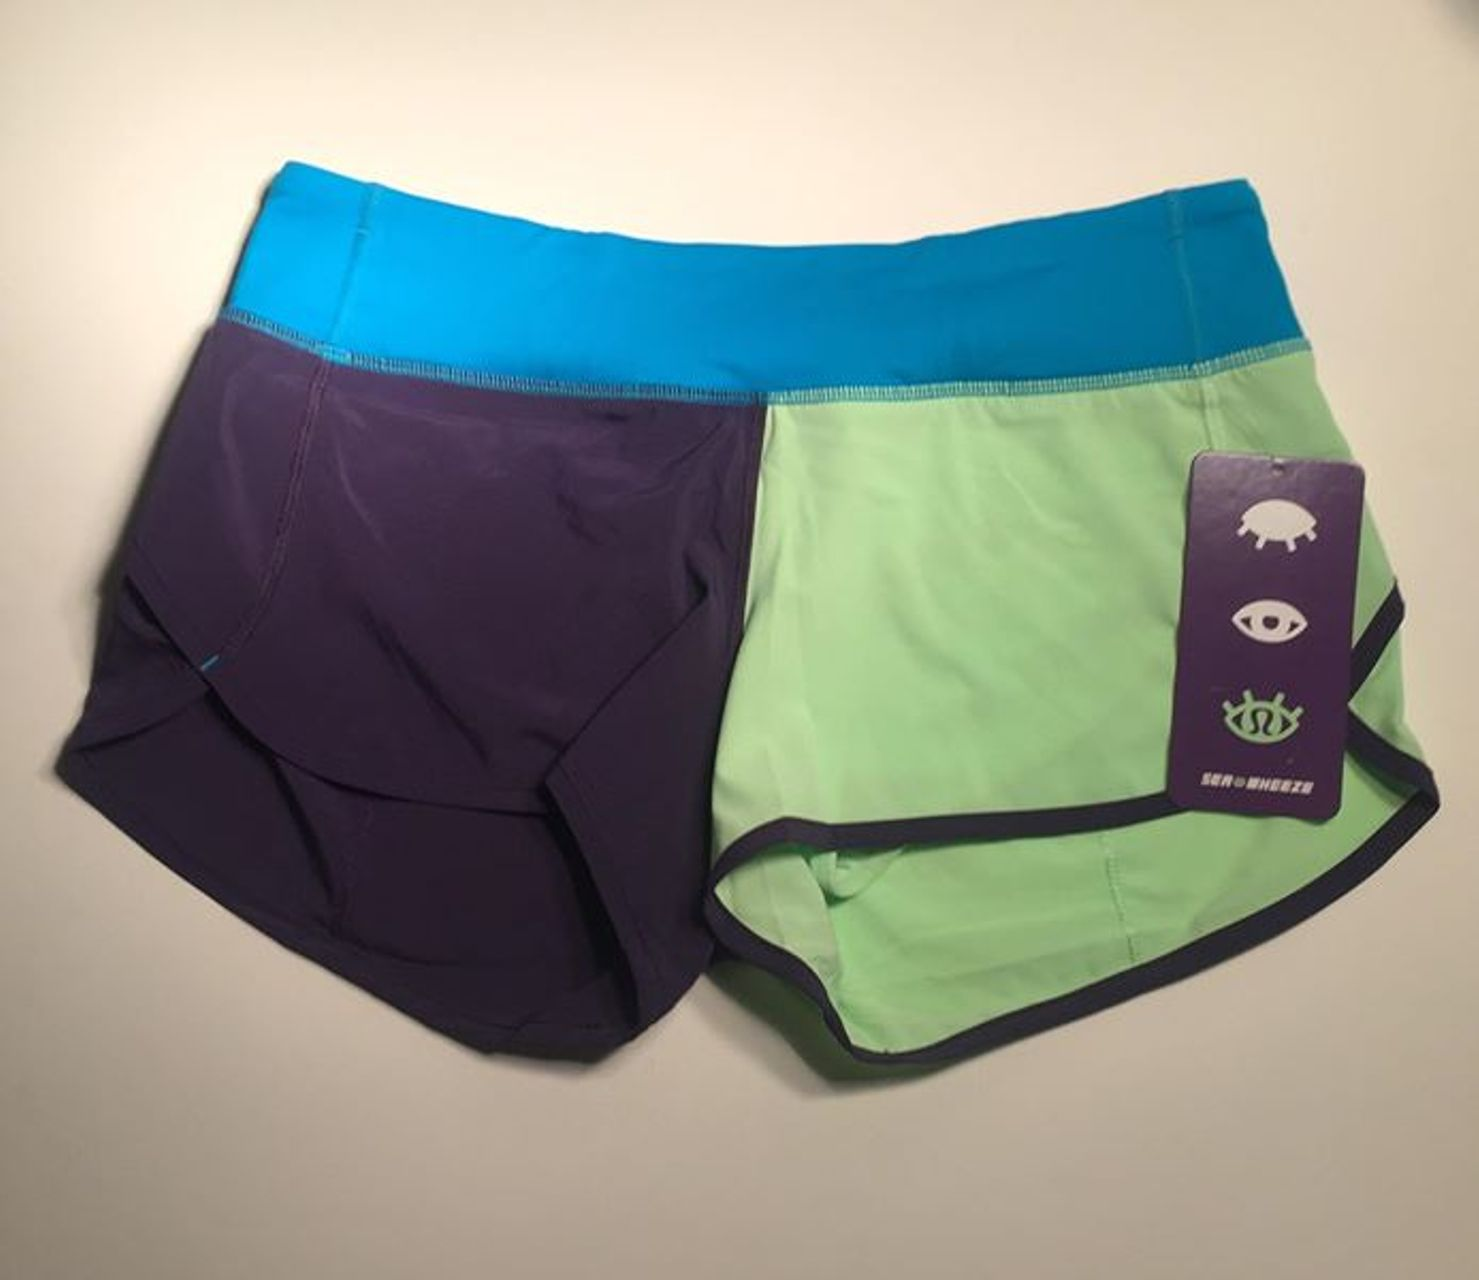 Lululemon Speed Short - 2014 Seawheeze - Color Block